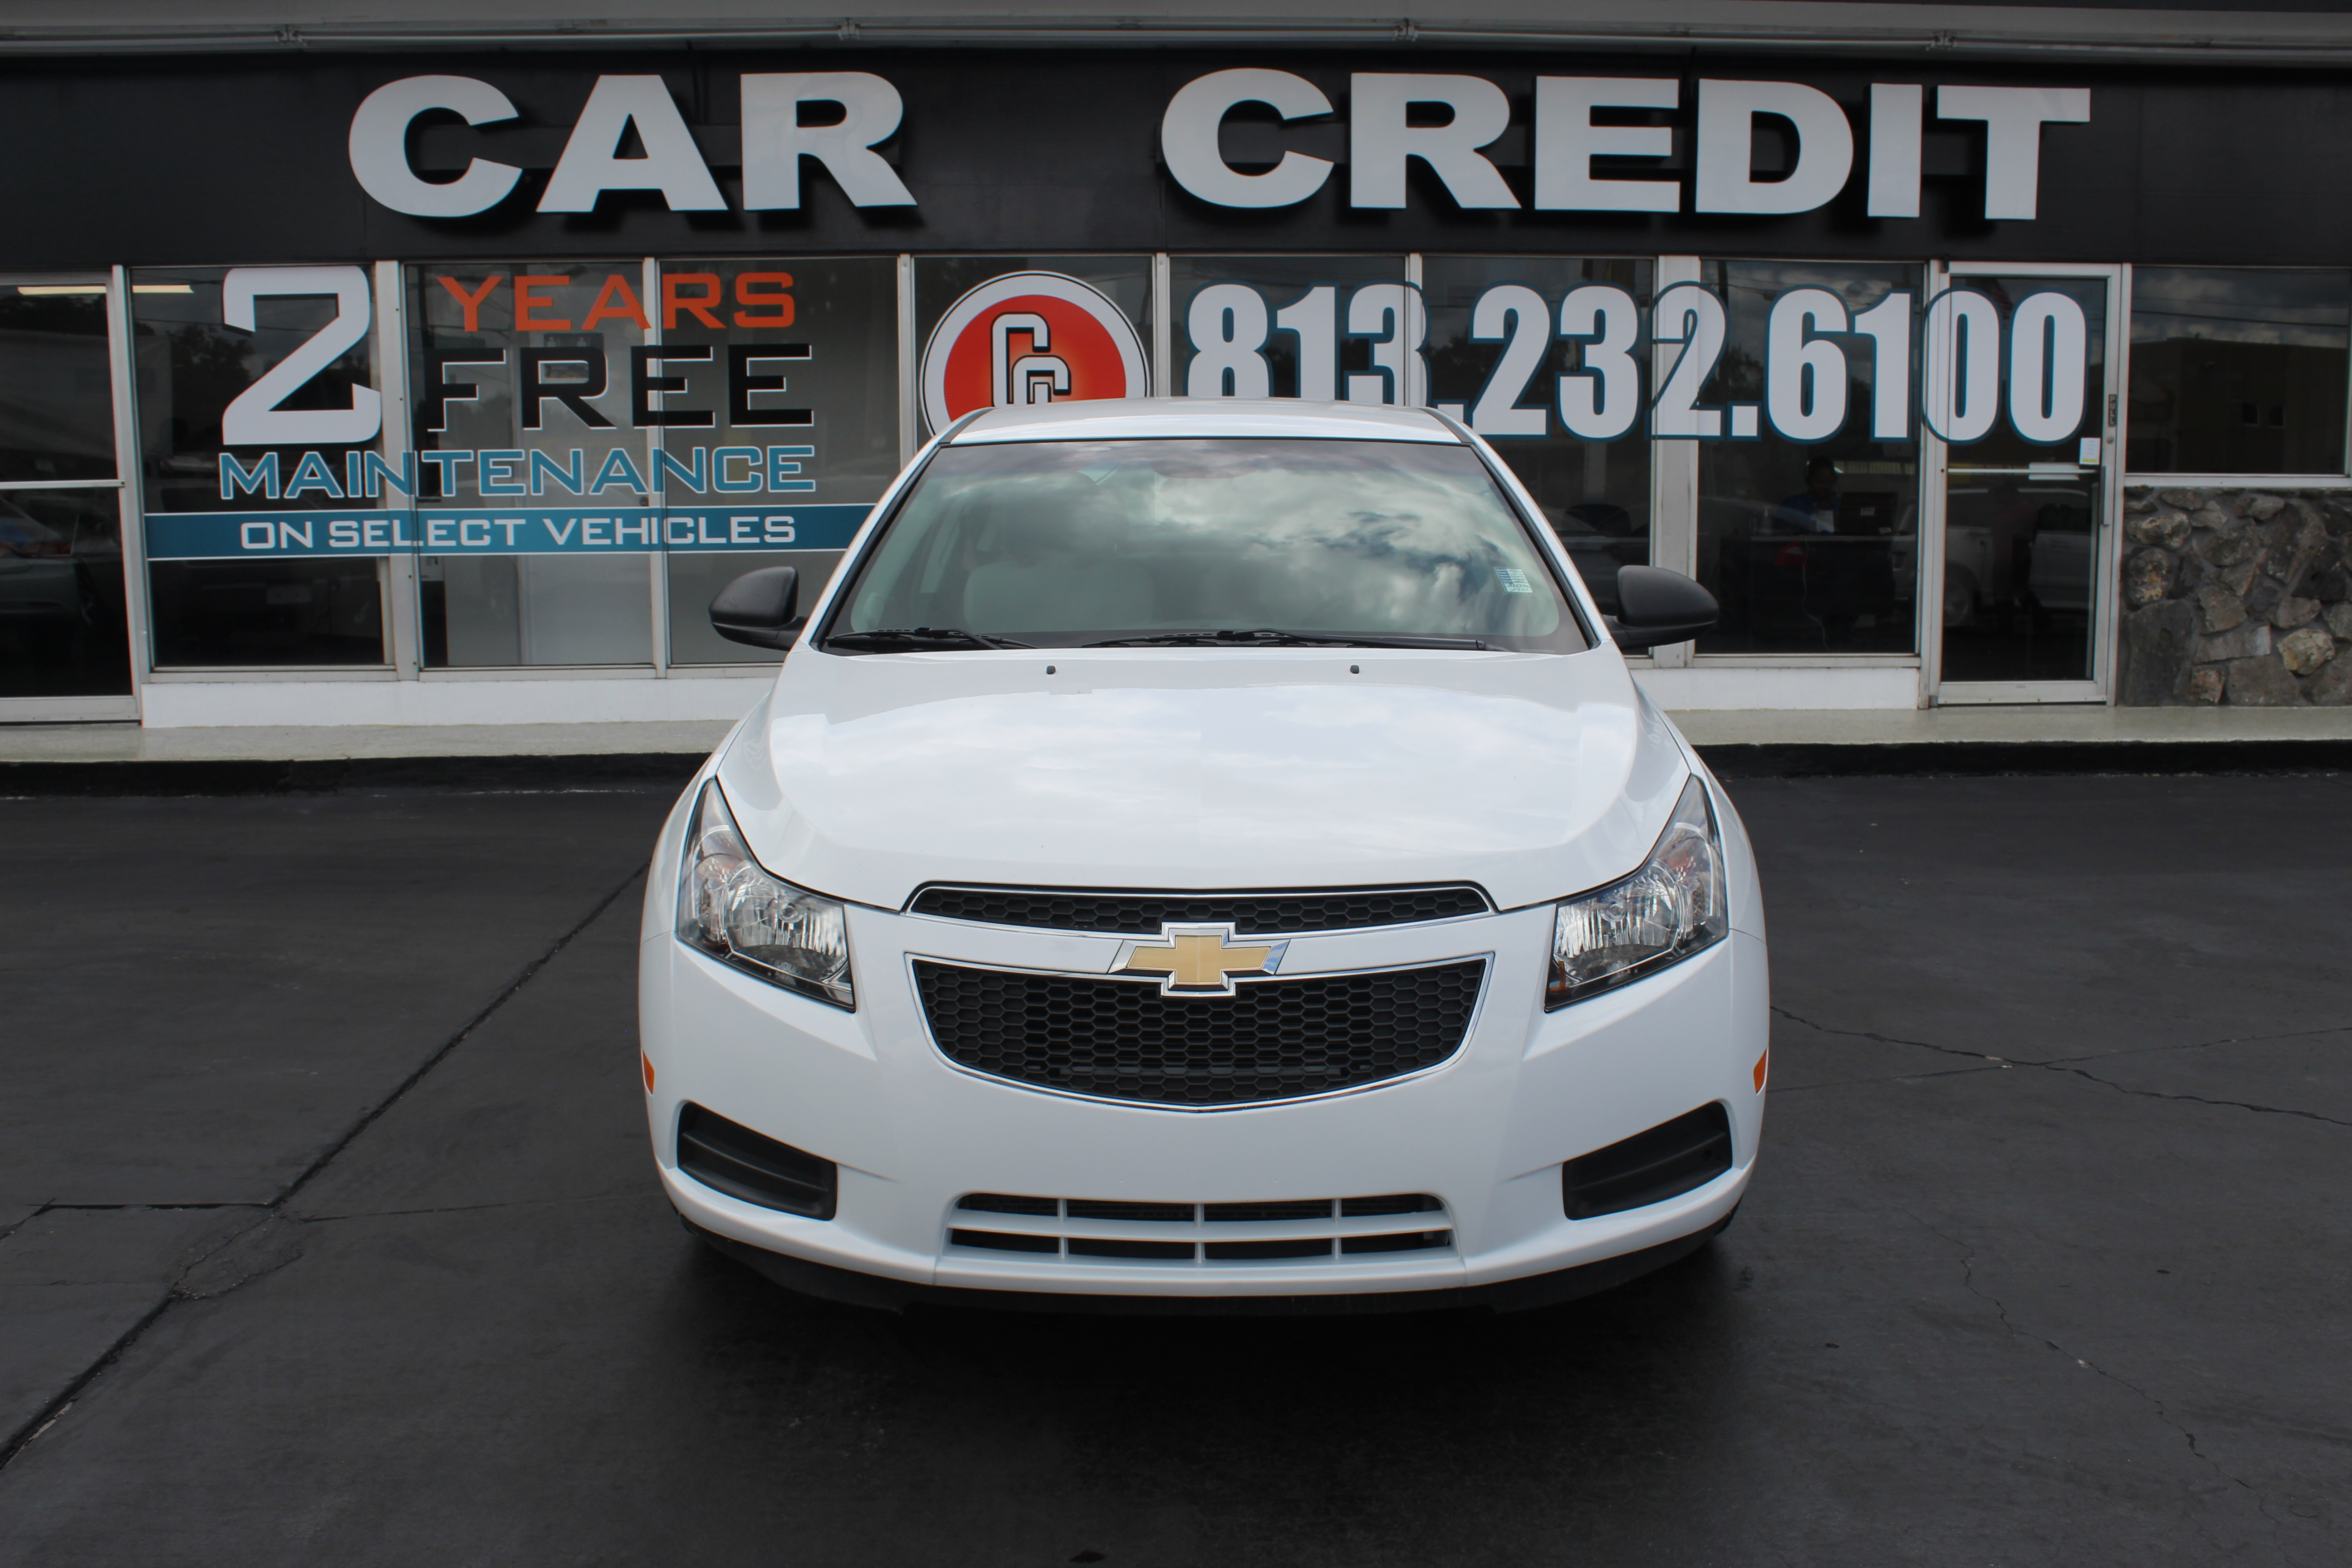 Pre-Owned 2014 Chevrolet Cruze LS Front Wheel Drive Sedan 4 Dr